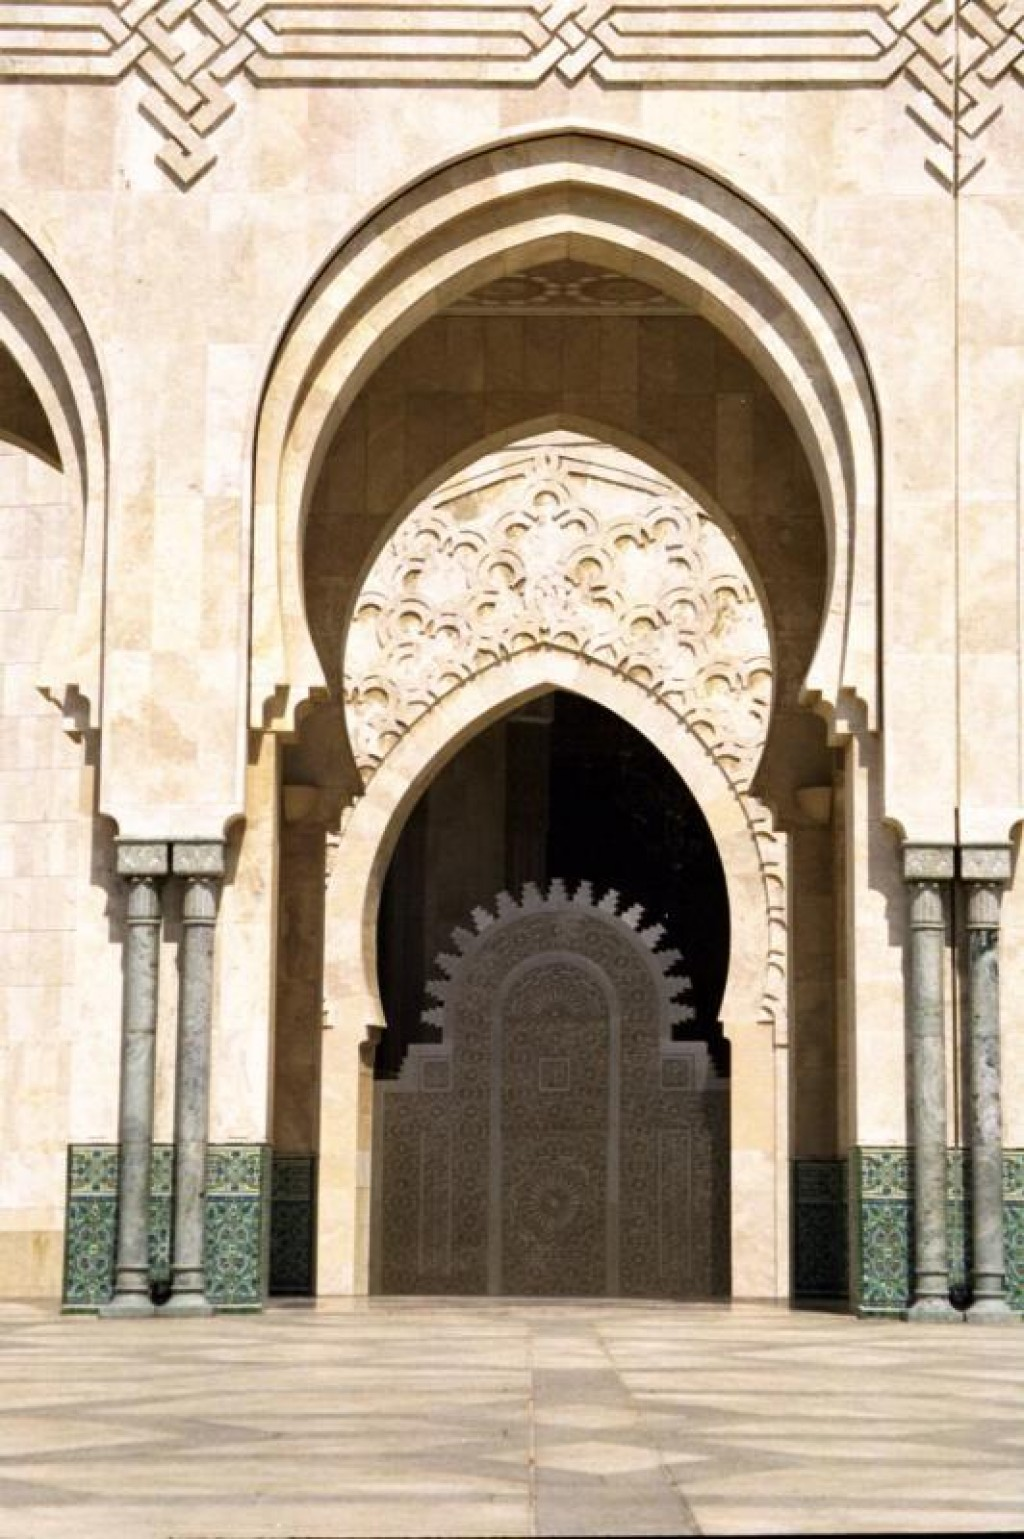 It is the only Mosque in Morocco to allow non-Arabs inside. (for a steep price!)